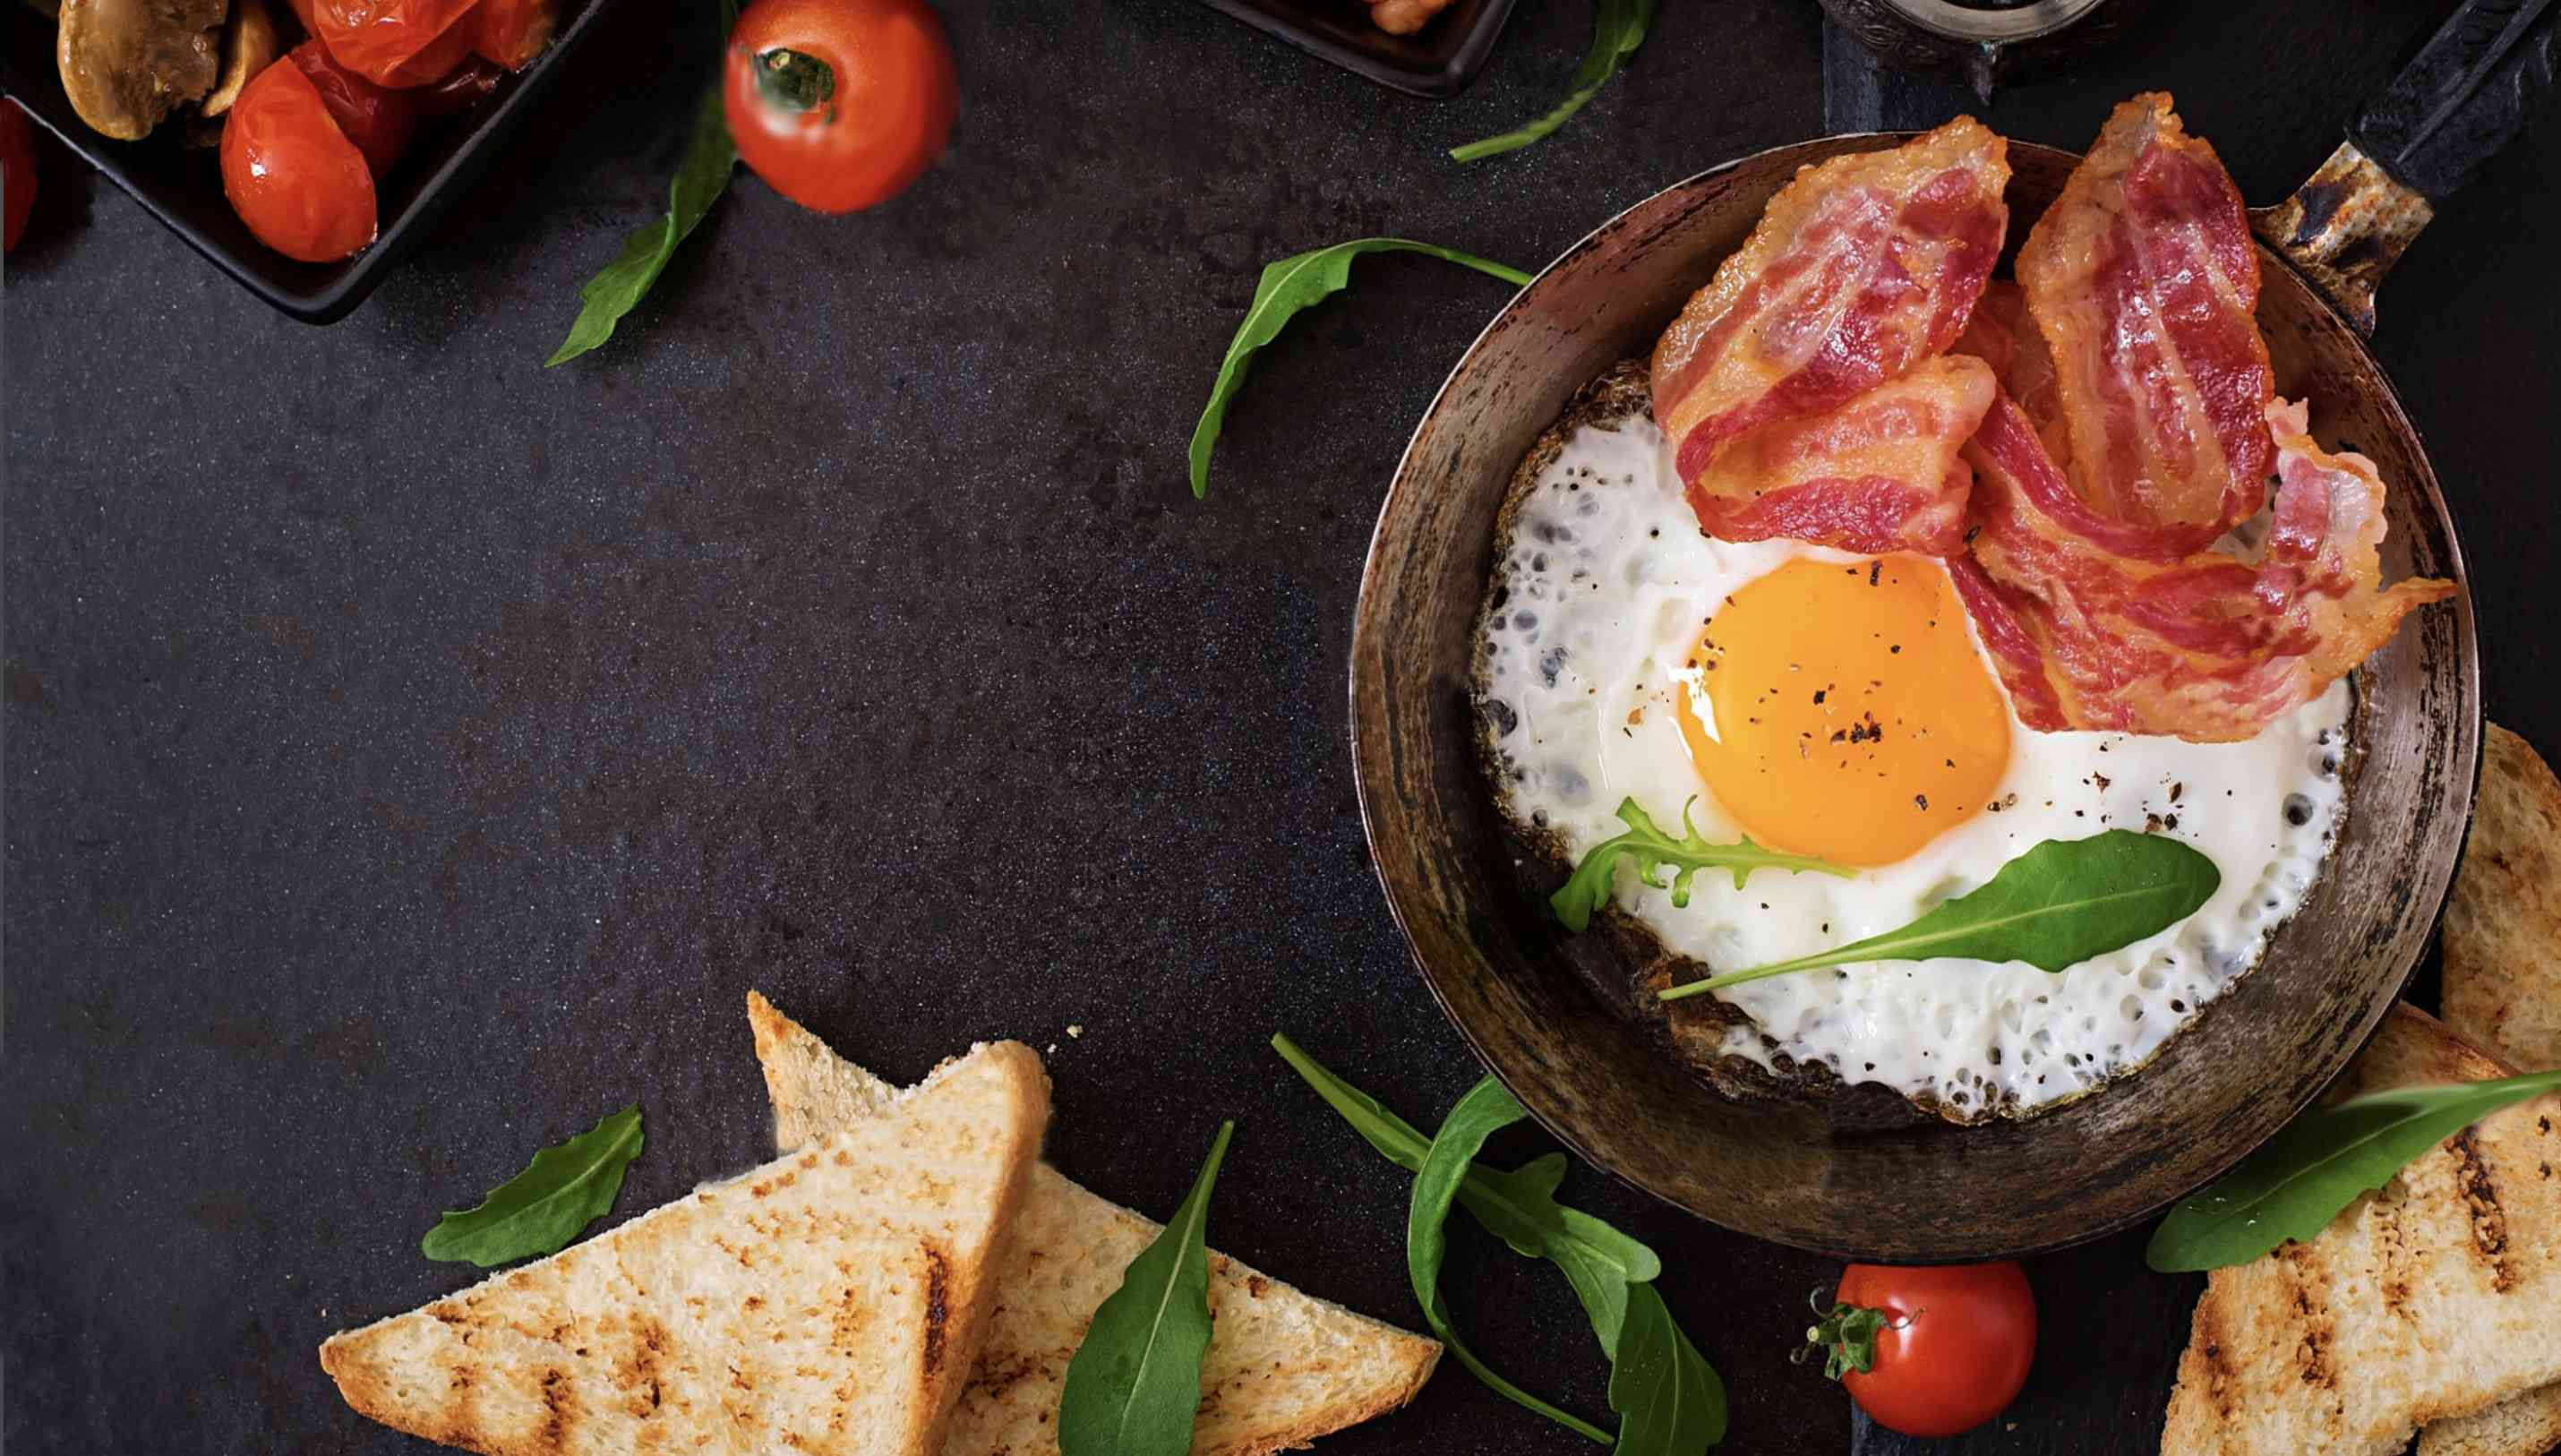 Over head shot of a metal pot with a soft-fried eggs and two strips of bacon. There are some half-slices of toast and small tomatoes on the table